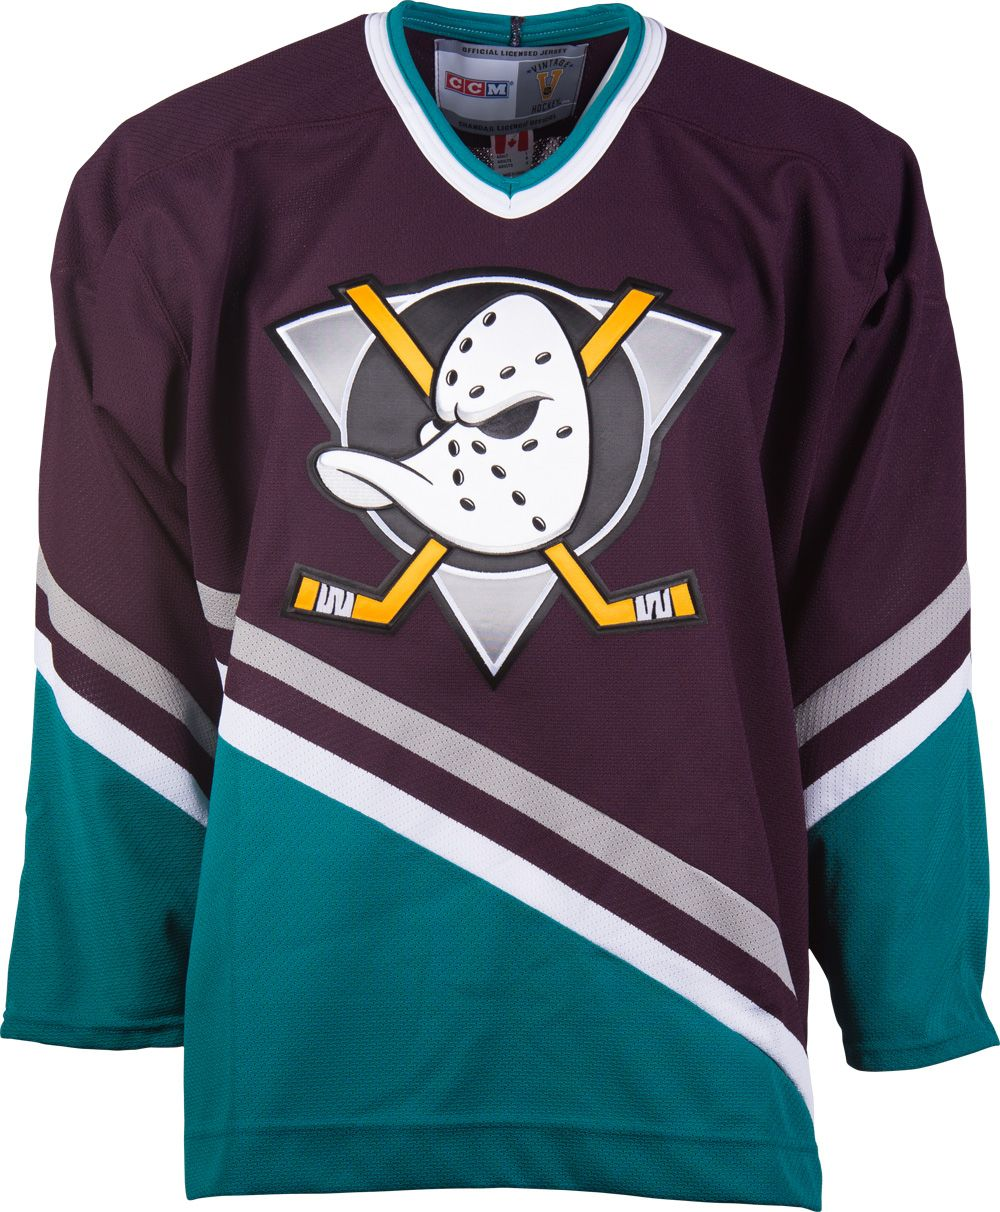 7852b6d6d864f7 Anaheim Mighty Ducks CCM Vintage 2006 Purple Replica NHL Hockey Jersey